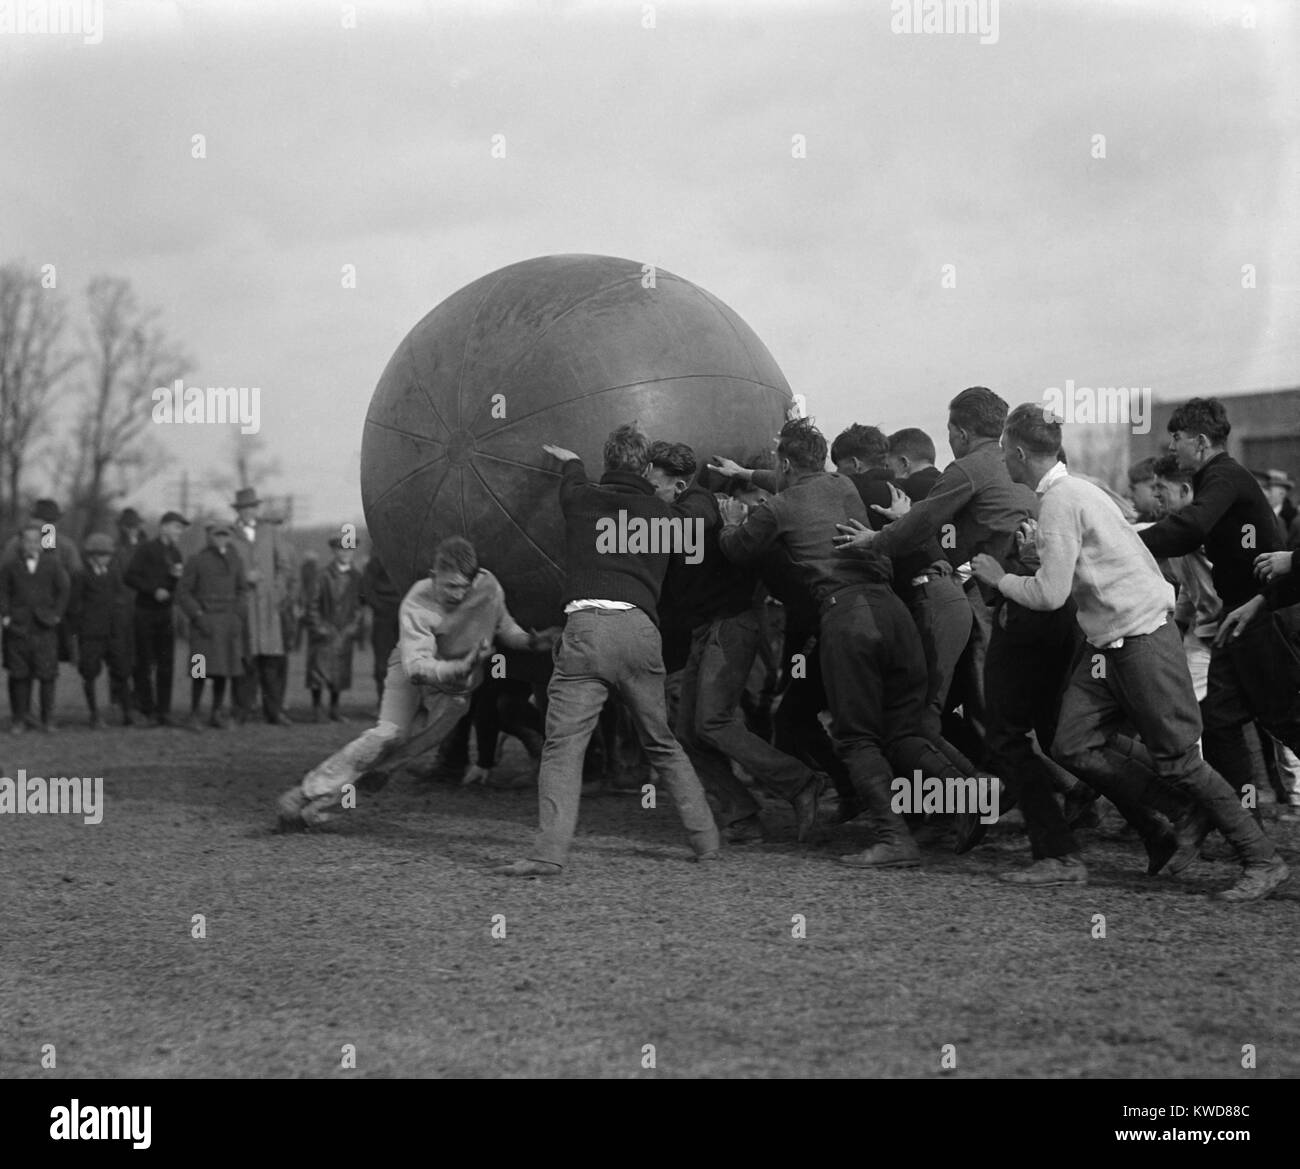 Pushball game at Maryland State College, 1923. Pushball was played by two teams on a field with a 6 feet diameter - Stock Image